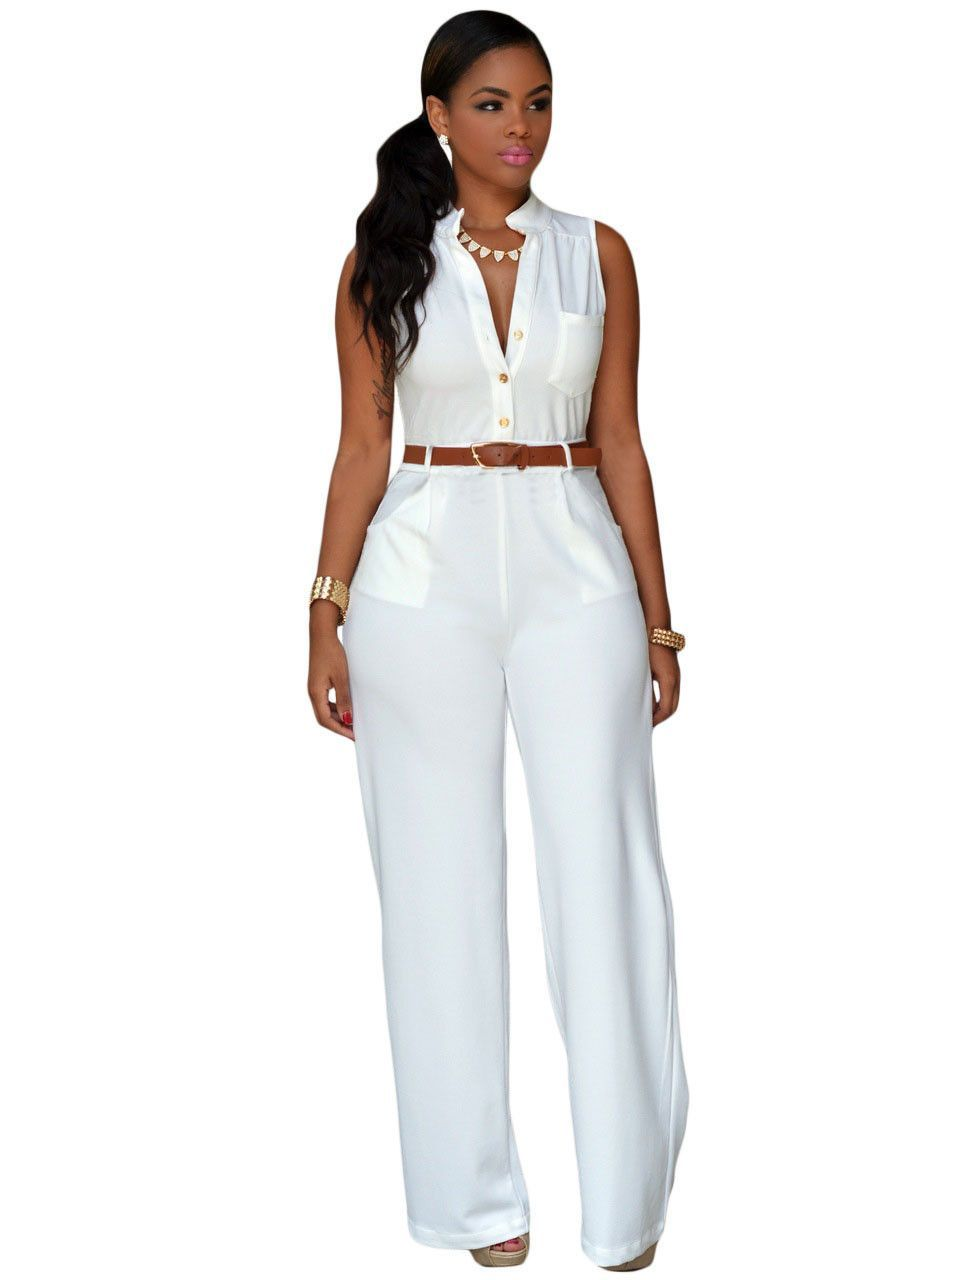 b7aab327f2a Zkess Jumpsuit Long Pants Women Rompers Sleeveless 2XL V-neck 2016 Belt  Solid Sexy Night Club Elegant Slim Jumpsuits Overalls